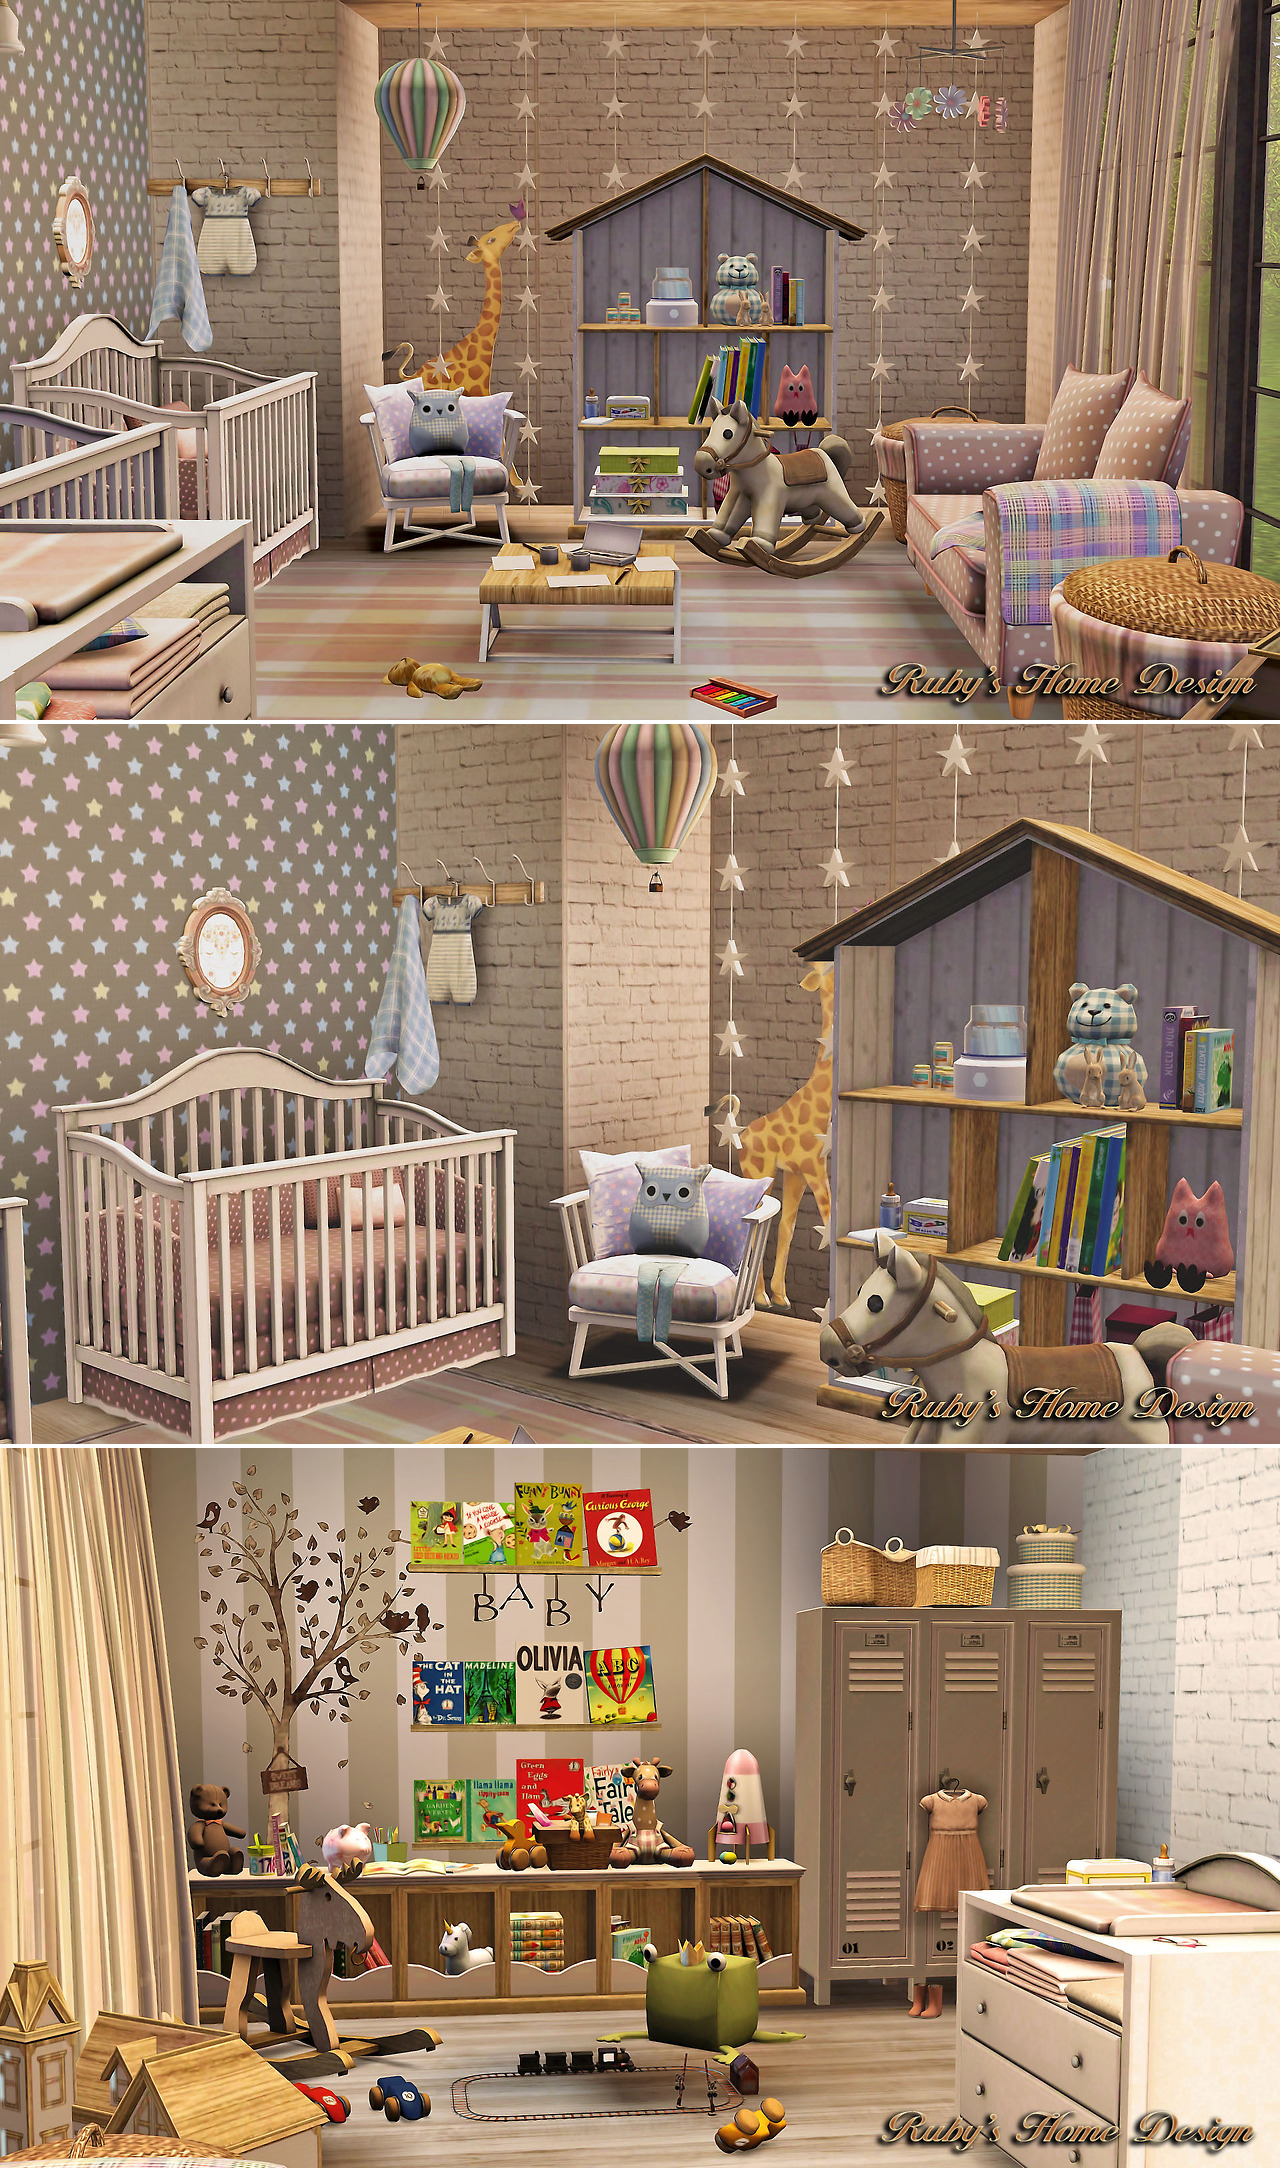 Sims 3 Badezimmer Download Kostenlos | Sims 3 Toddler Hair Colors ...